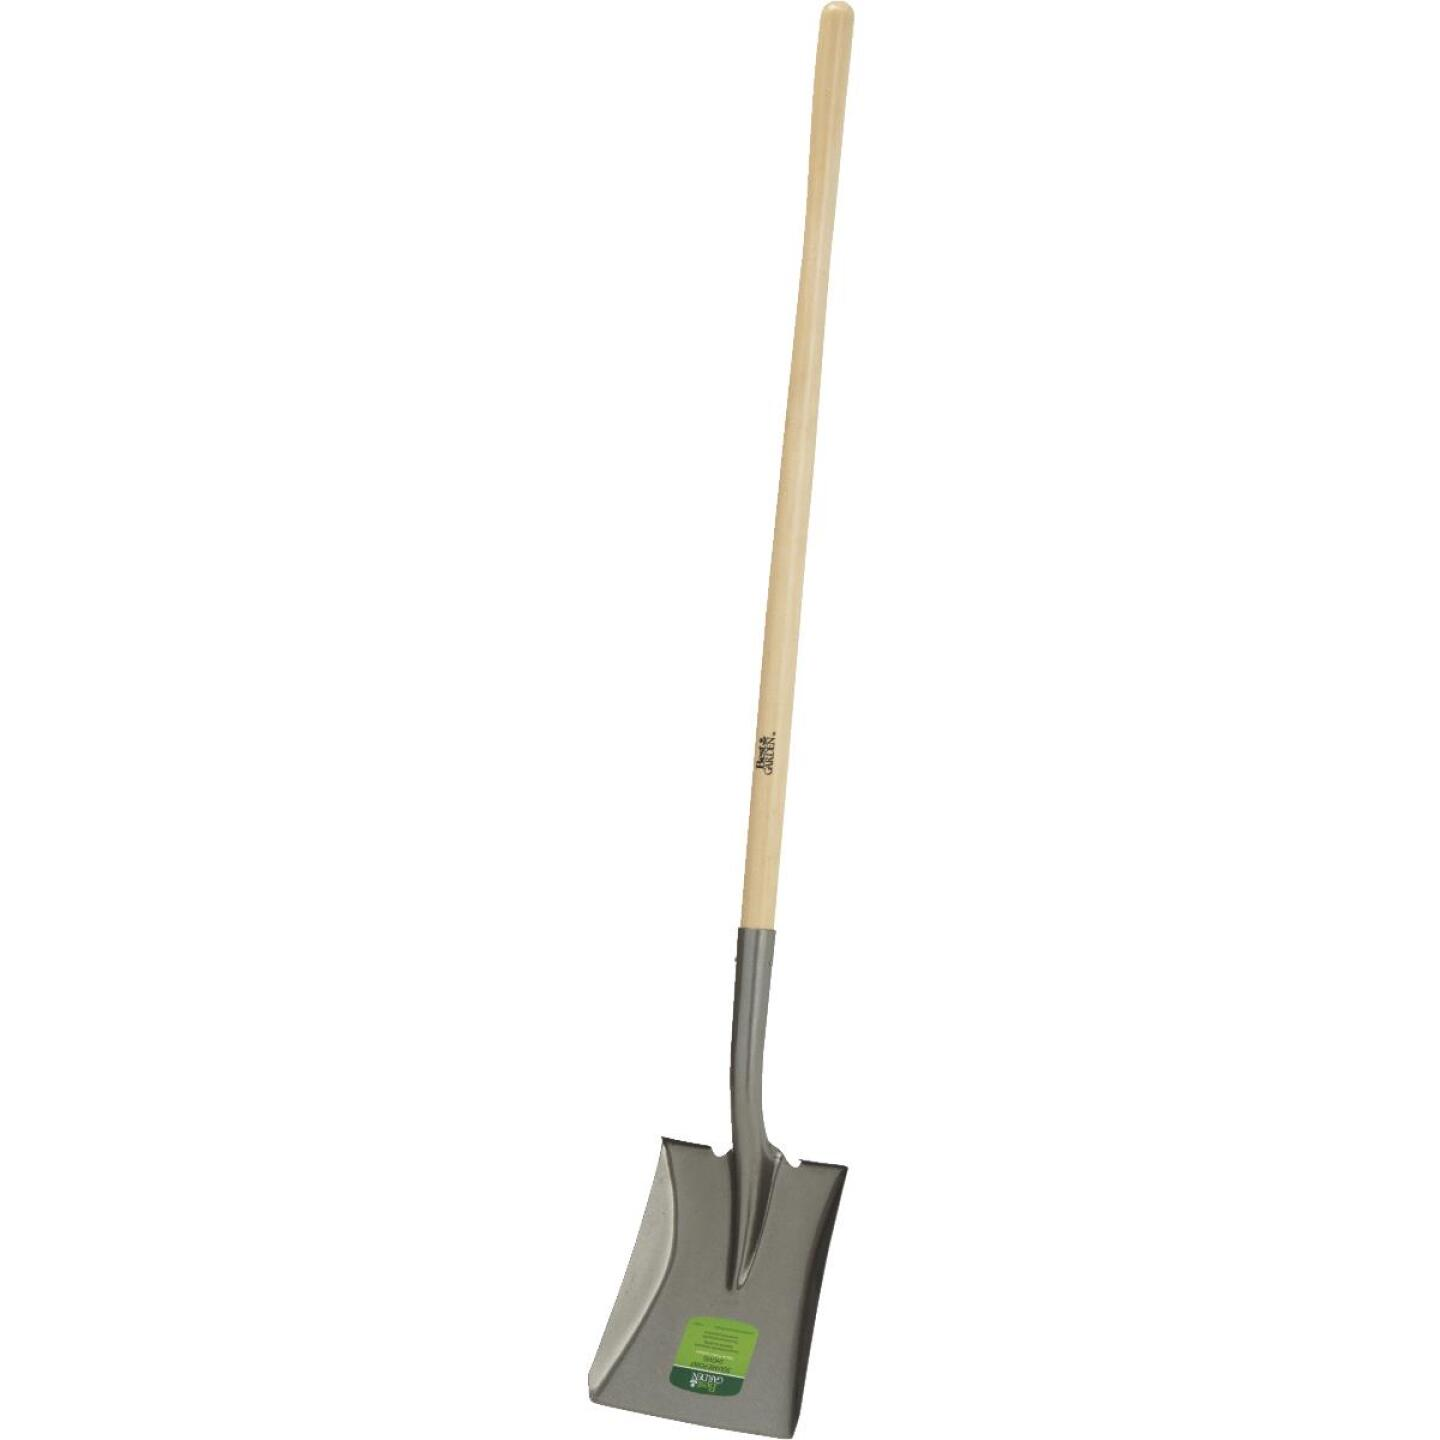 Best Garden 44 In. Wood Handle Square Point Shovel Image 5